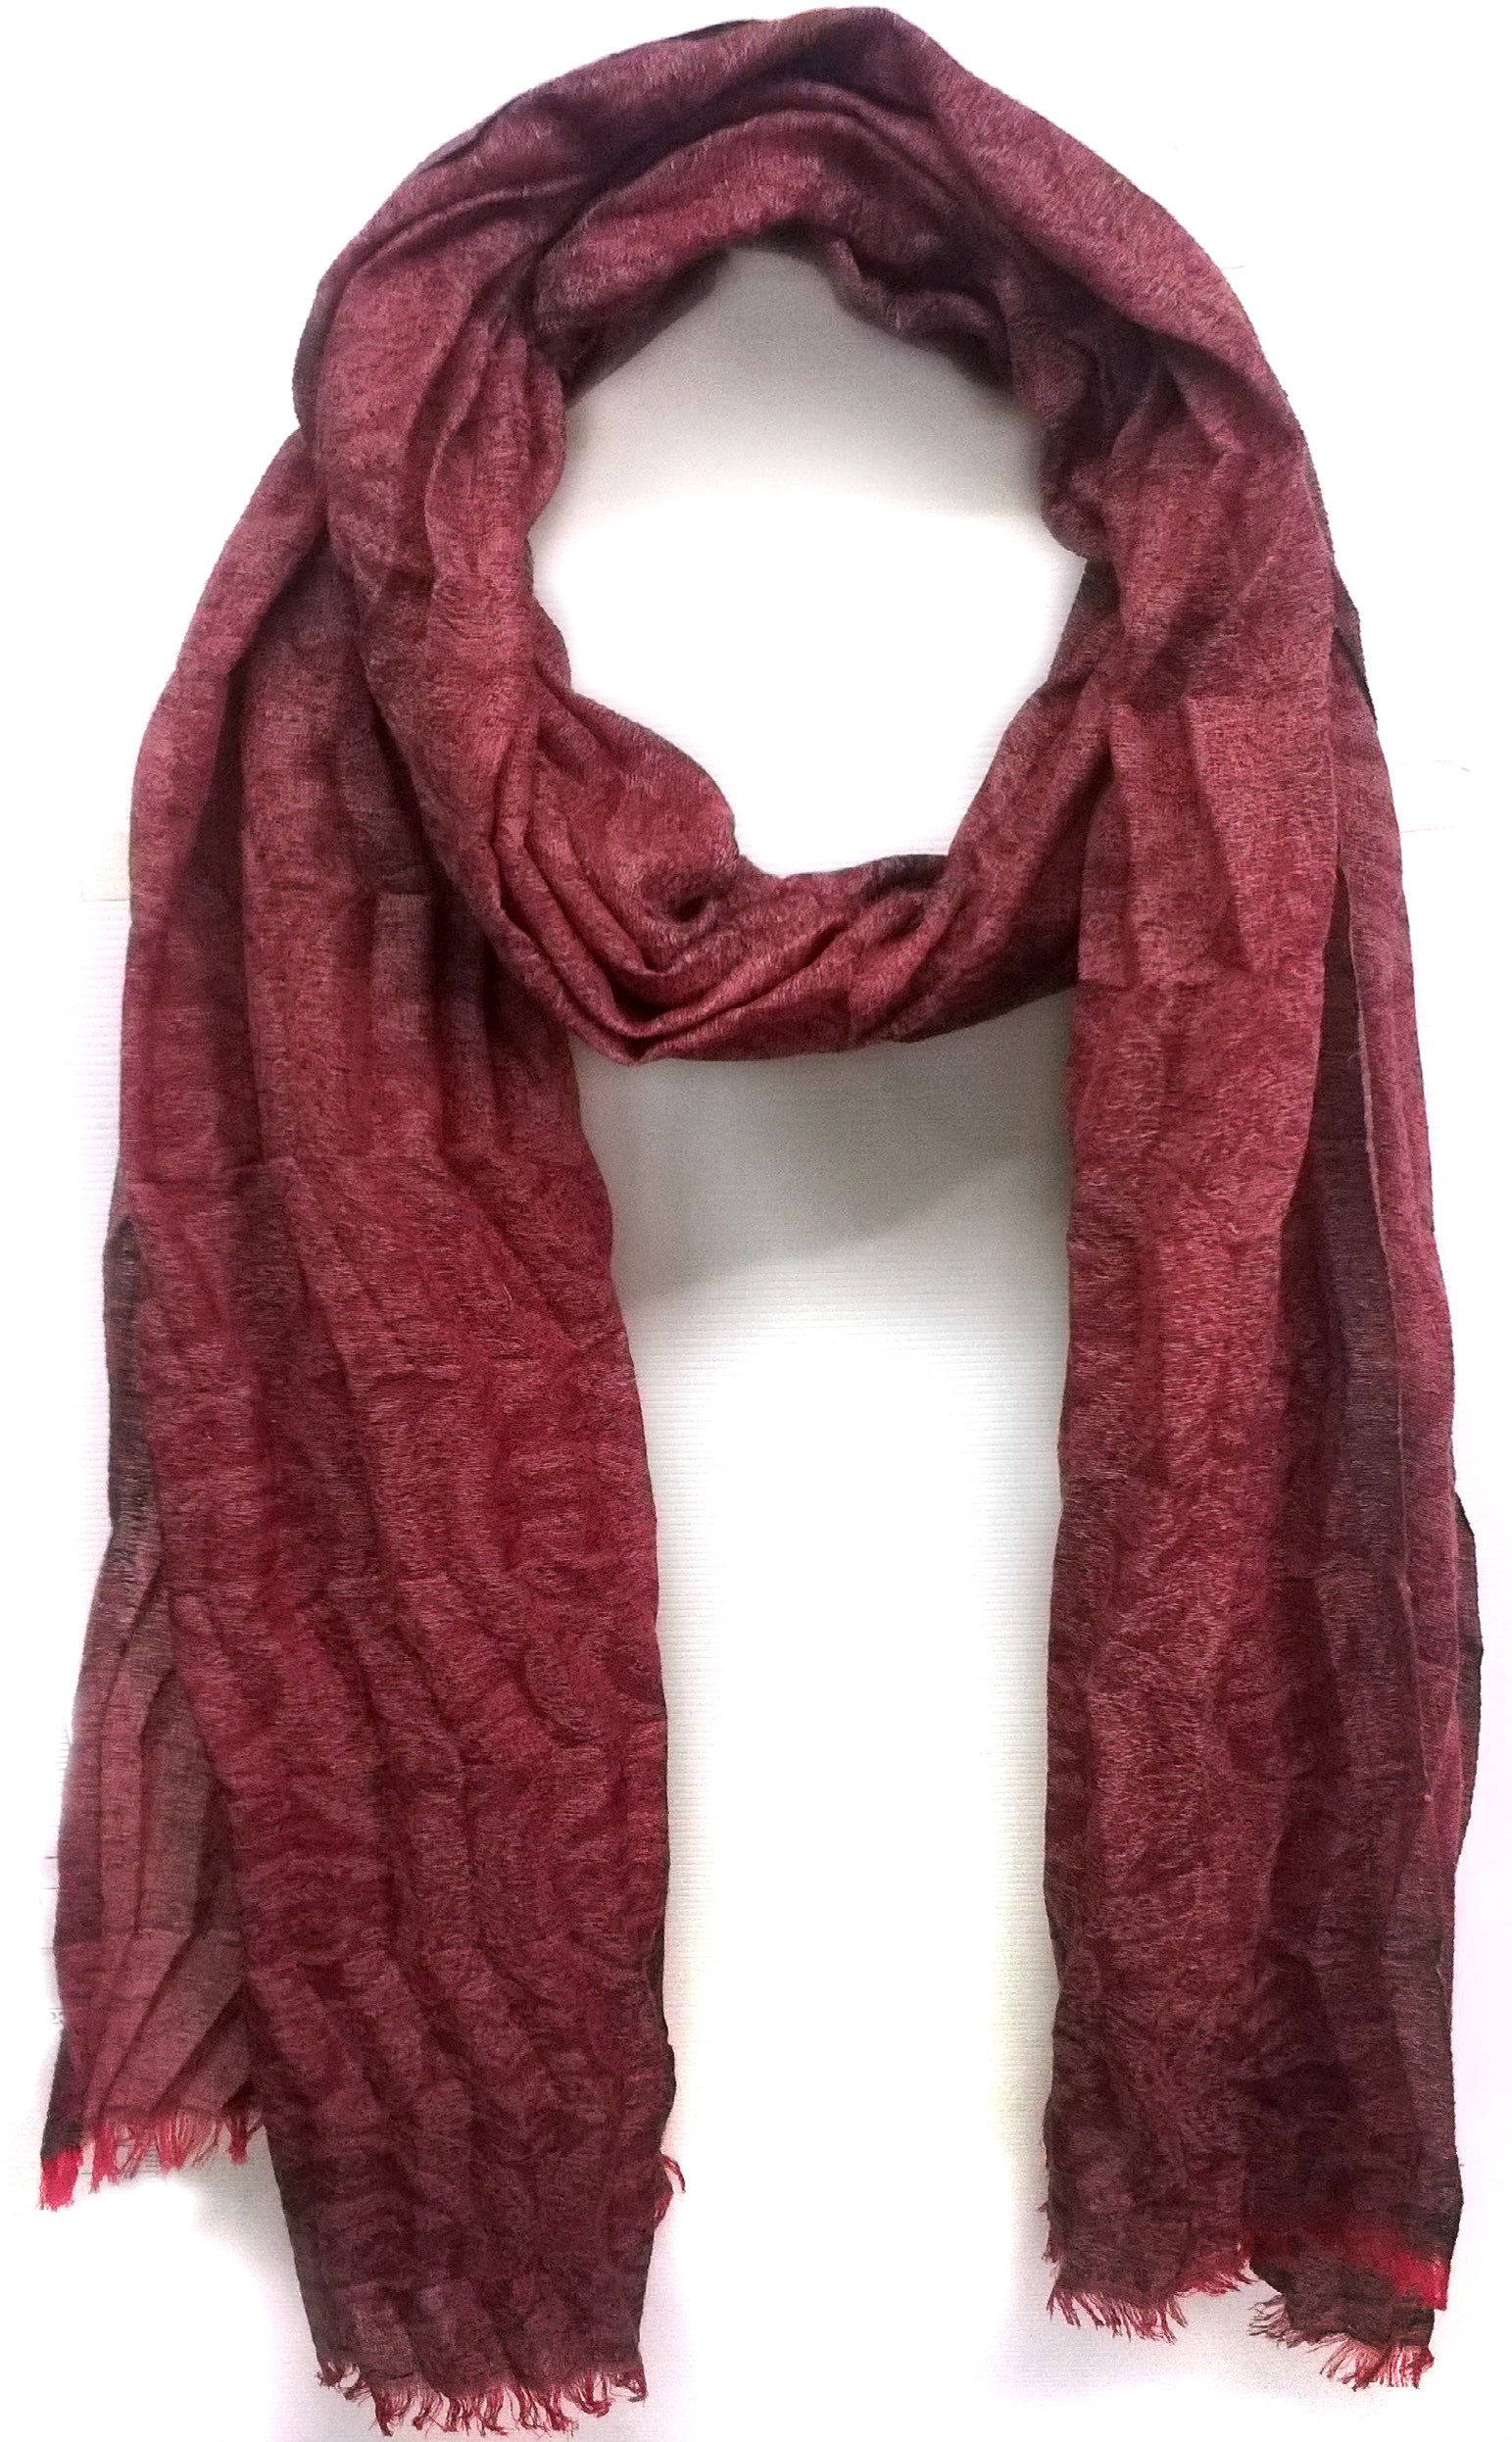 ScarfKing Polyester Self Design Womens Shawl